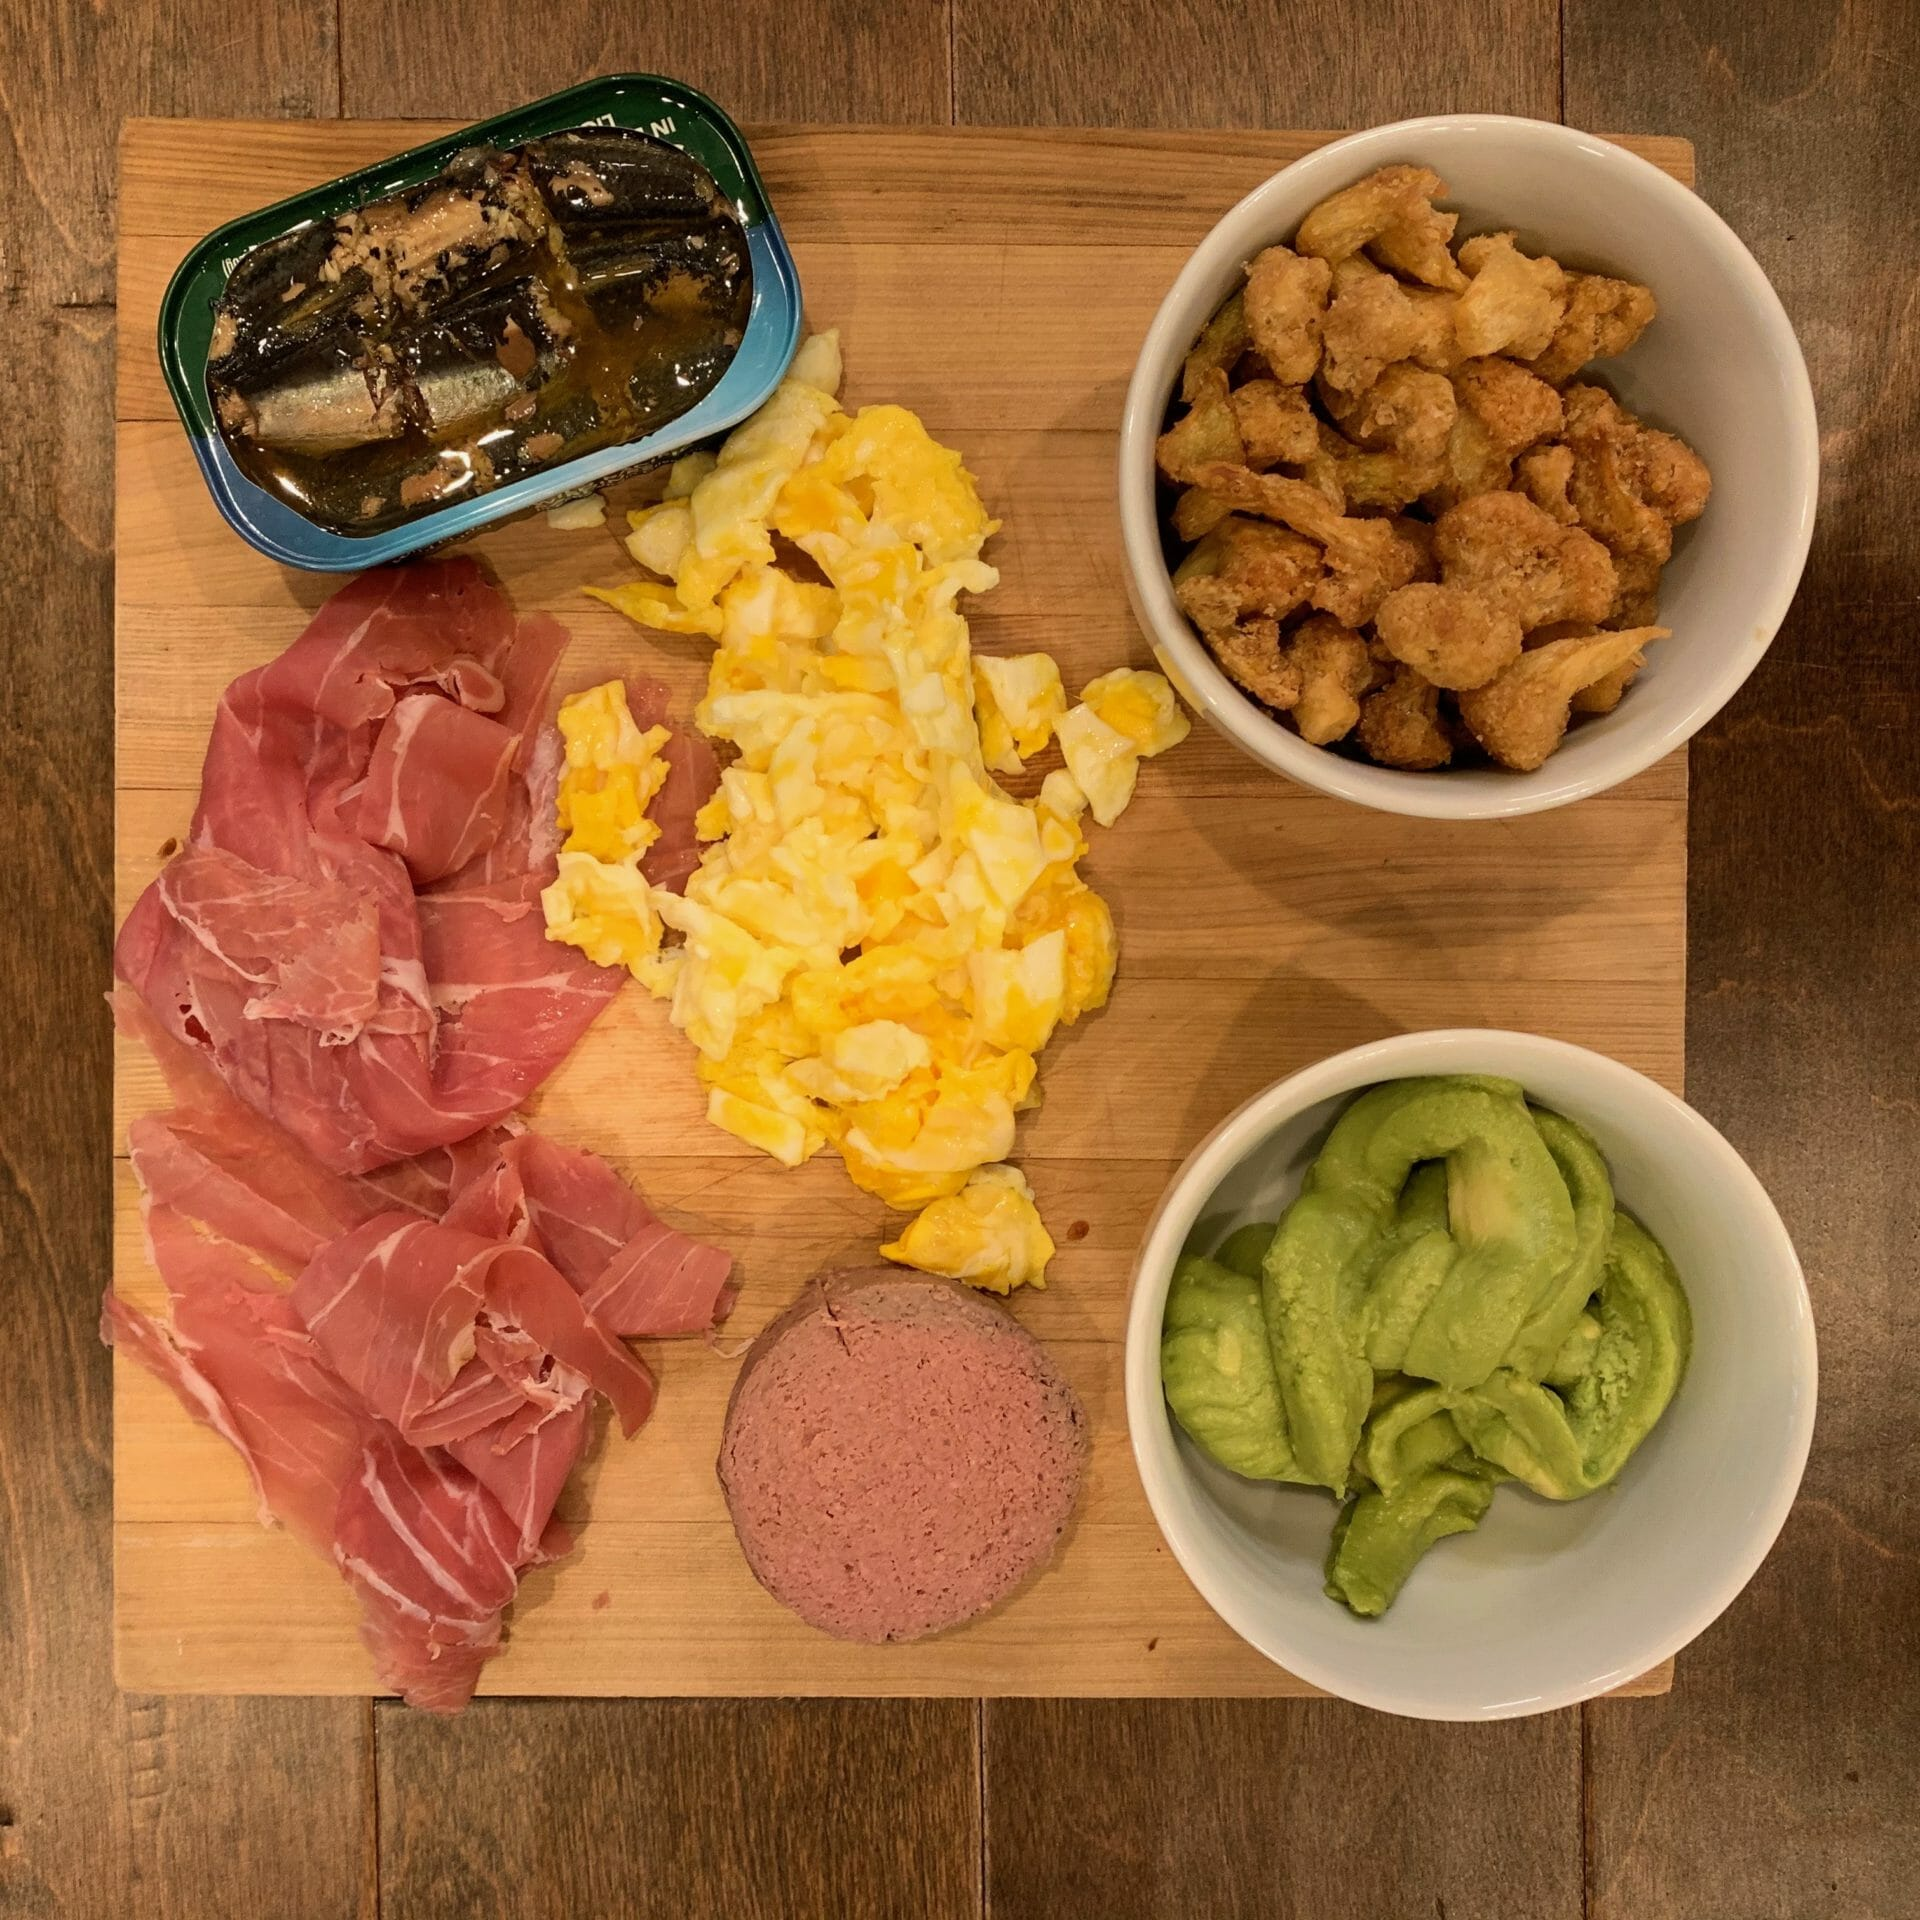 Dinner plate with canned sardines, uncured prosciutto, guacamole, liverwurst, scrambled eggs and cauliflower bites